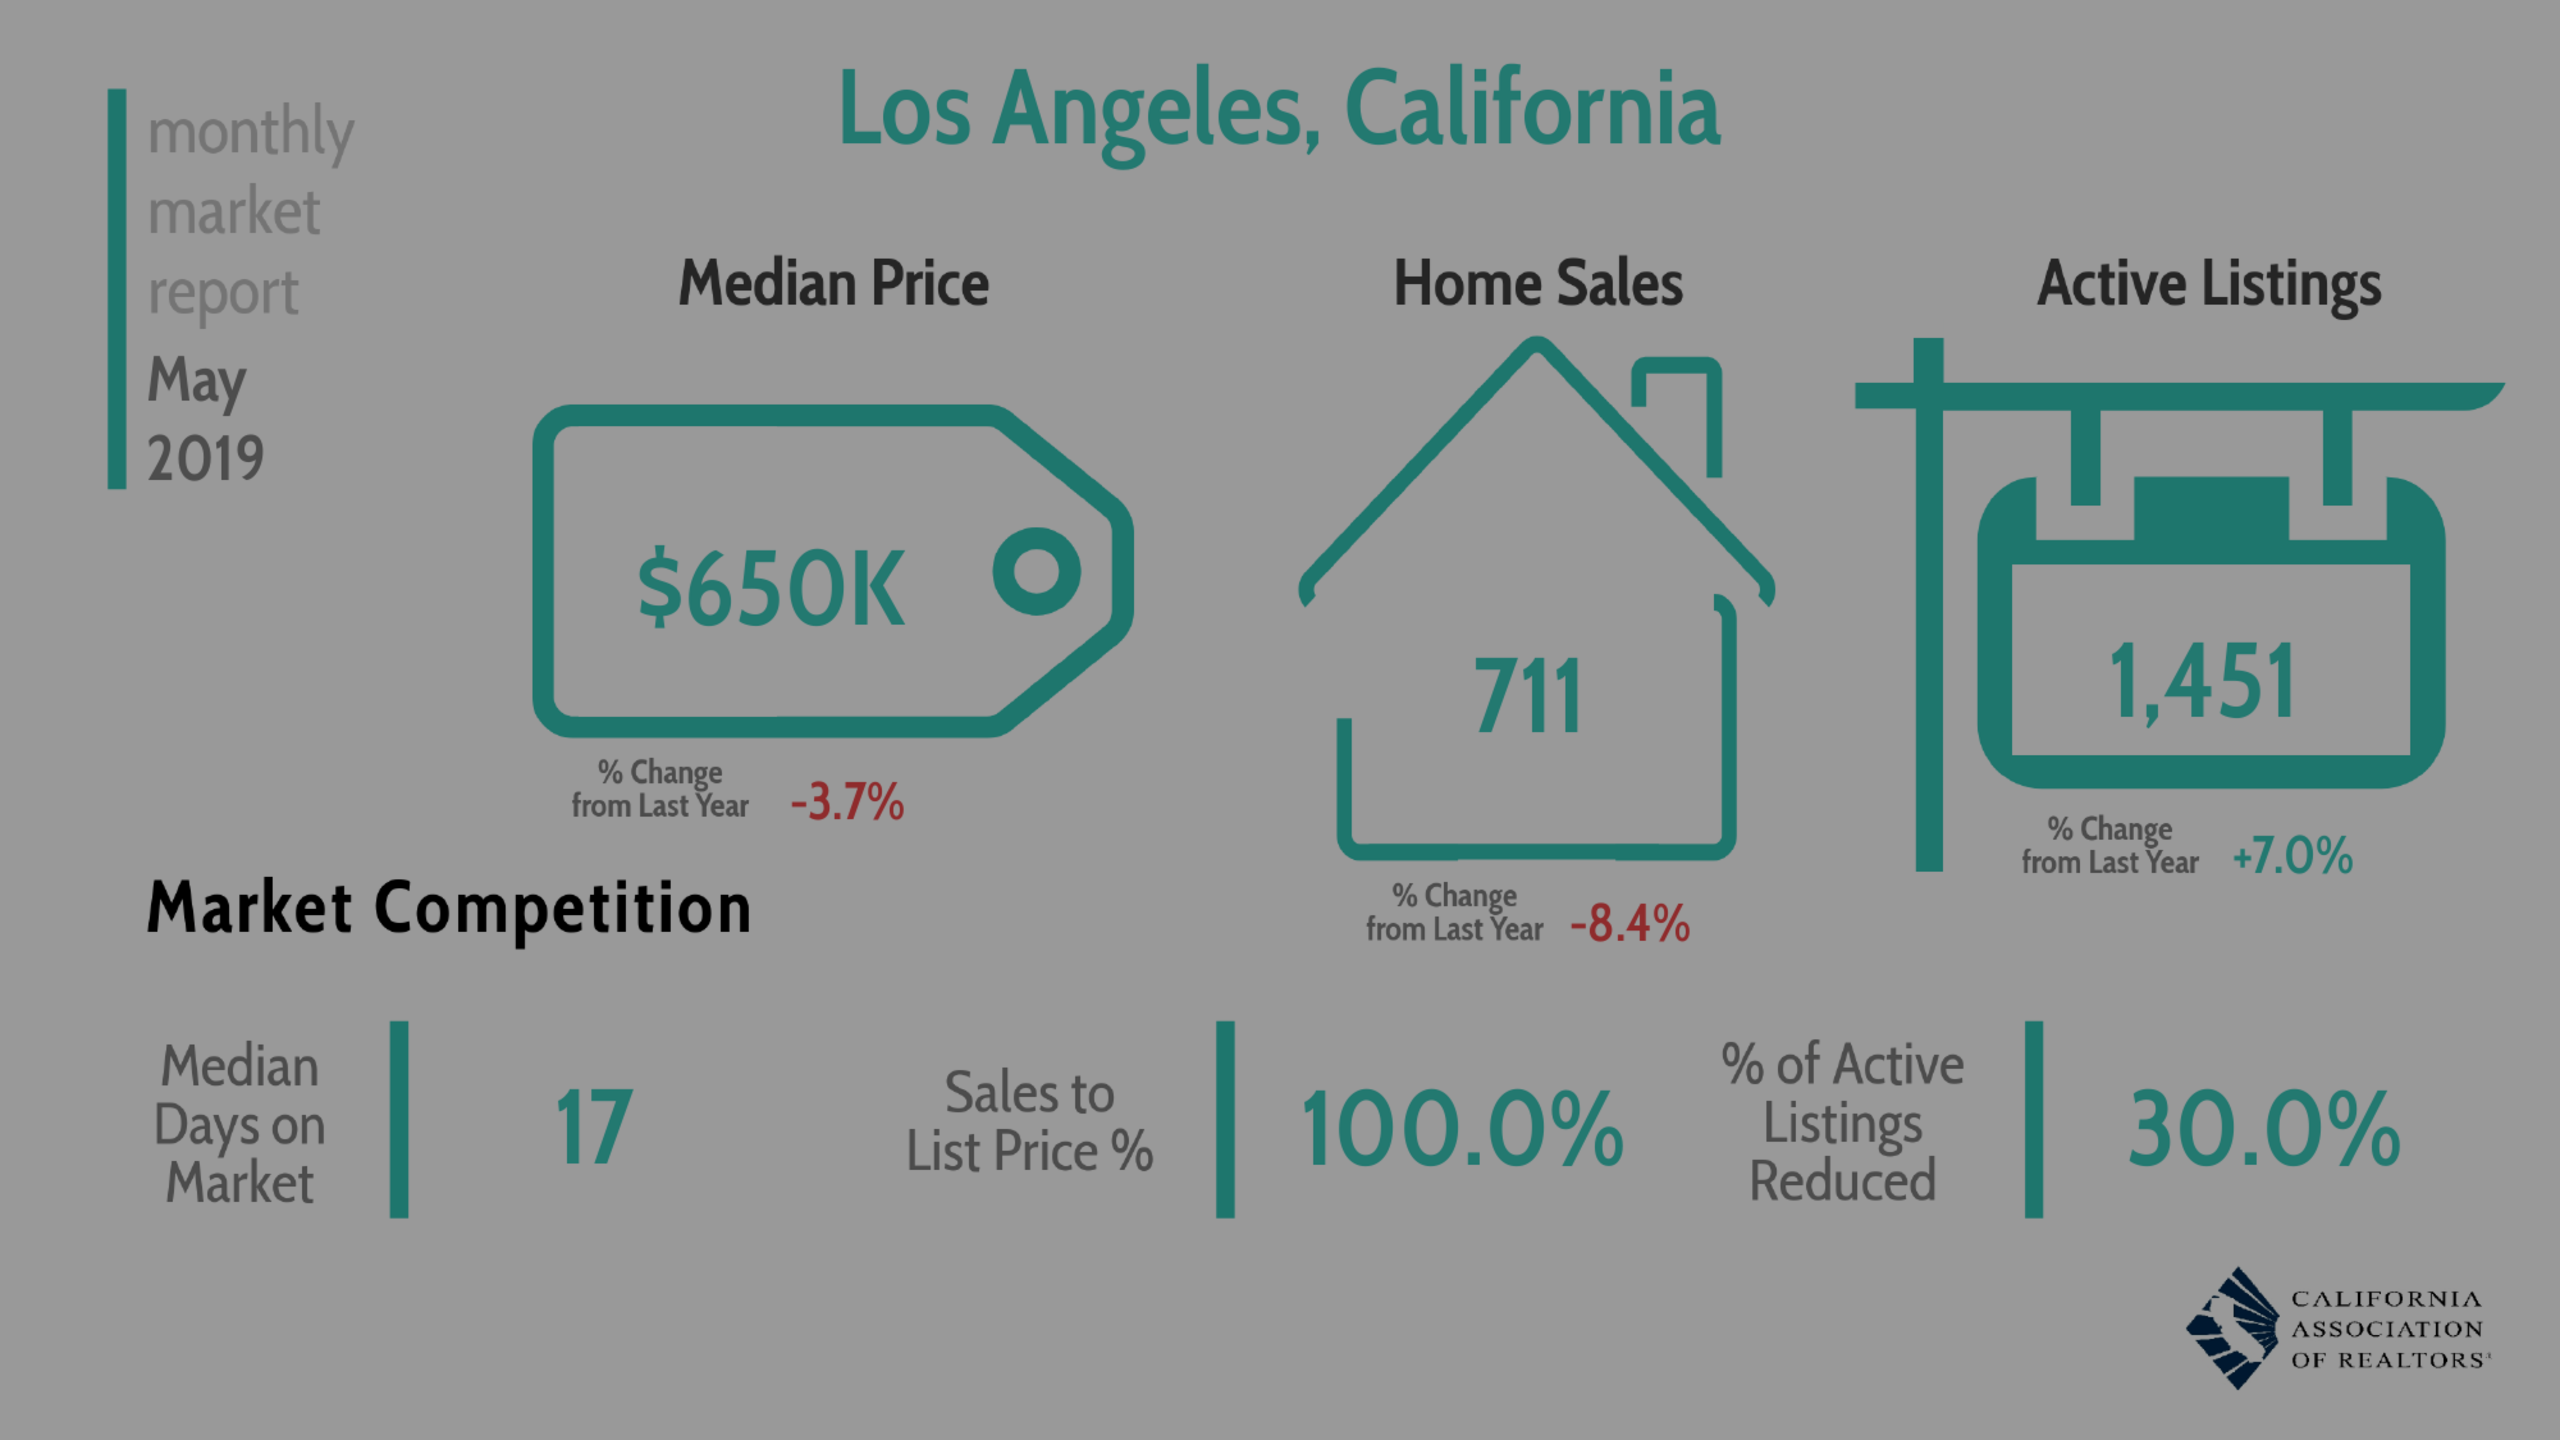 Los Angeles Market Report – May 2019